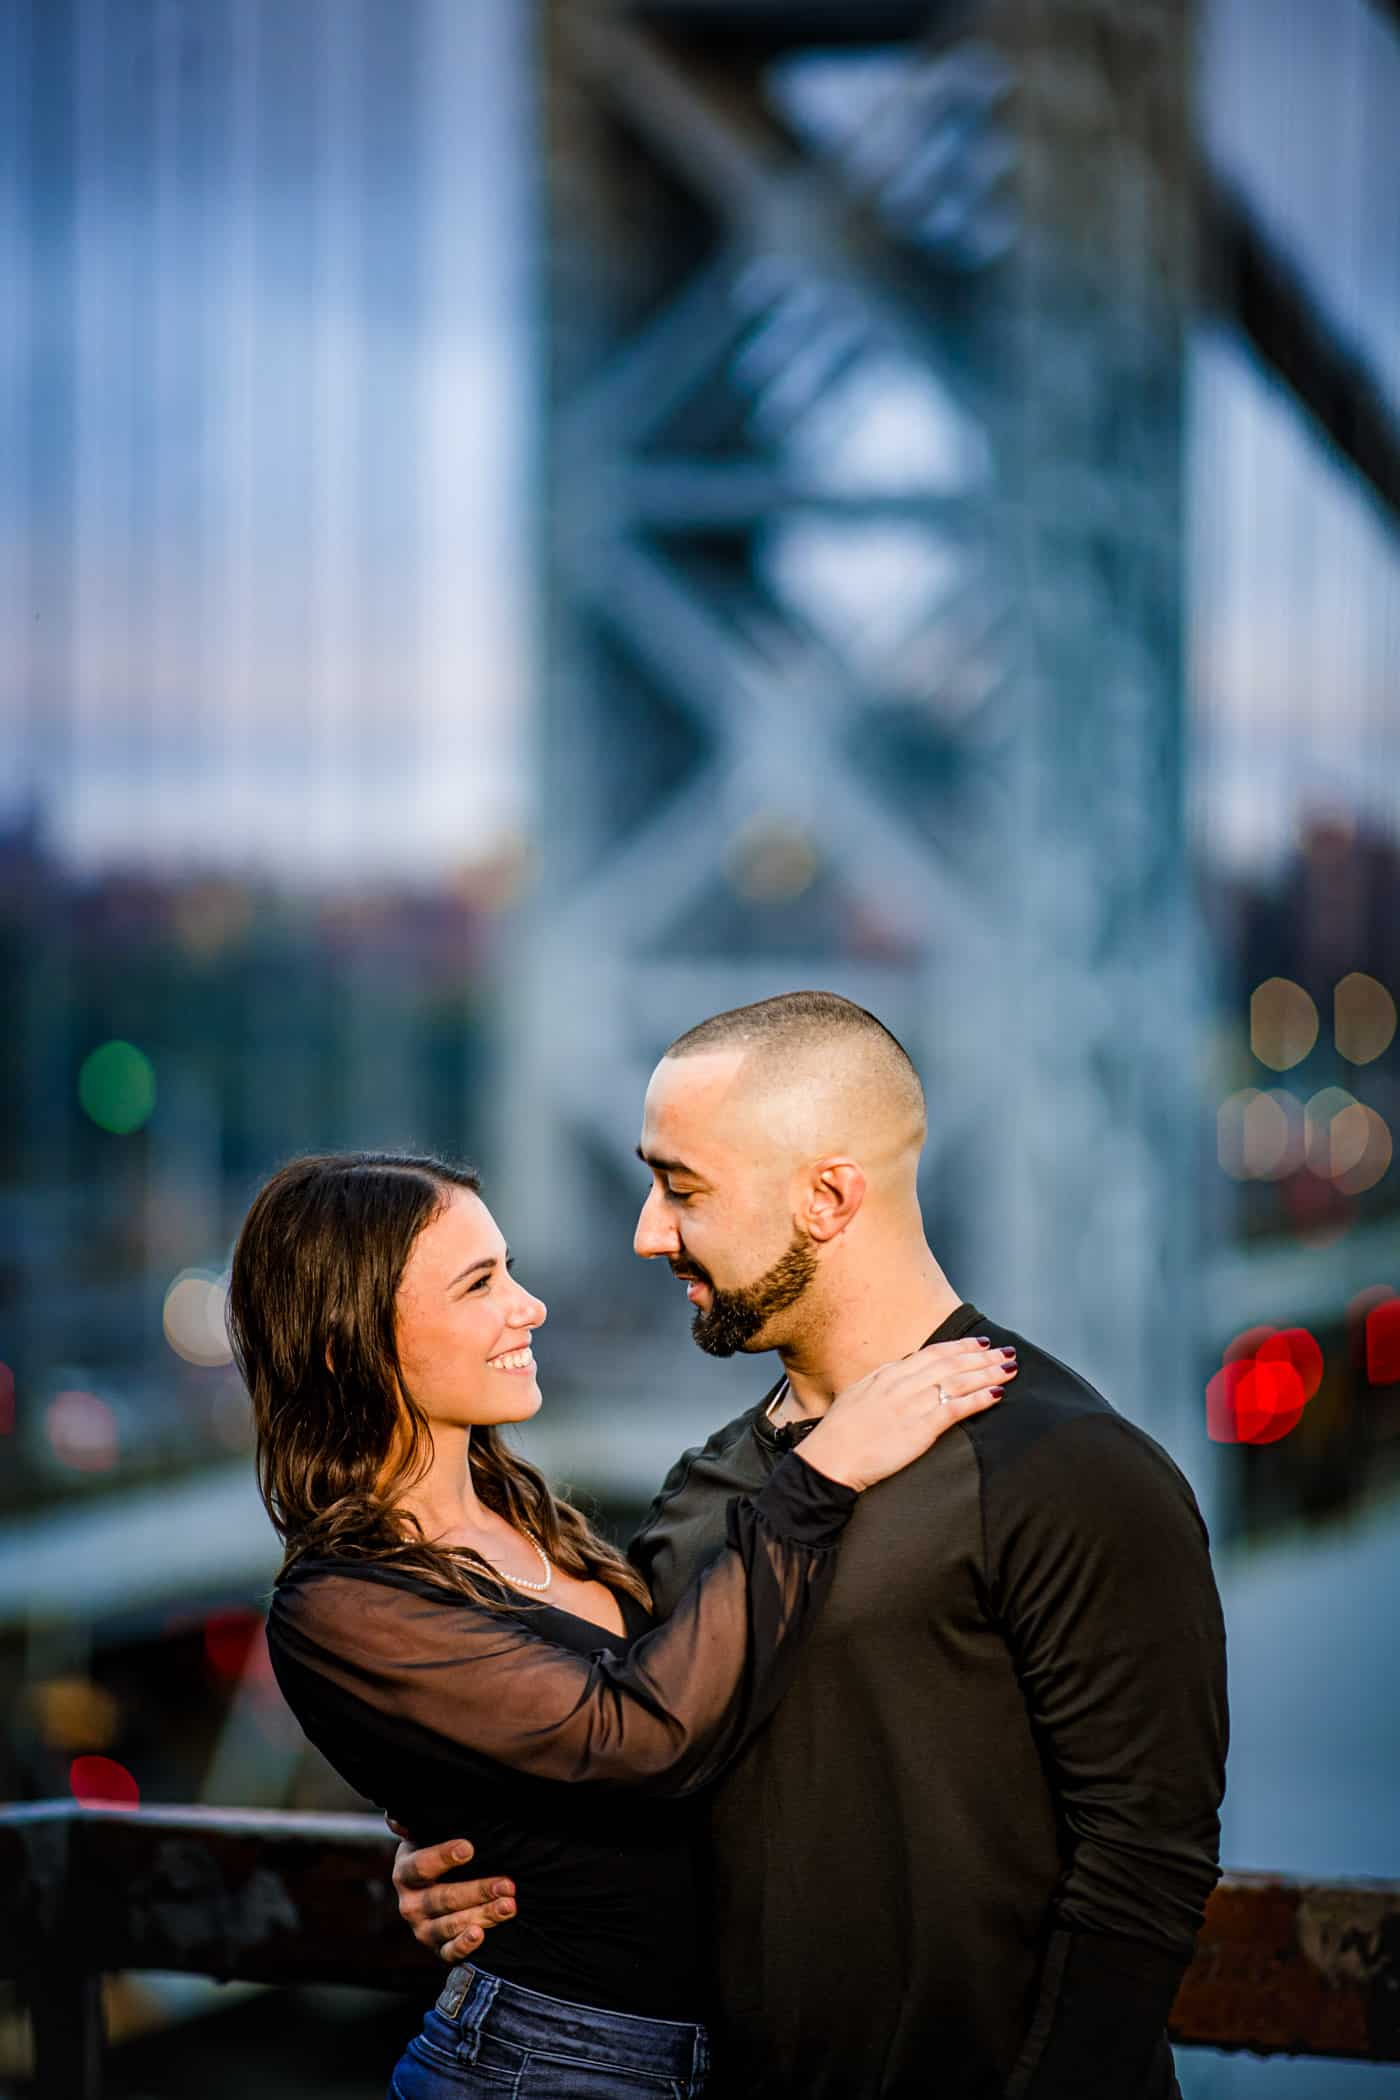 Engagement Photos near the George Washington Bridge